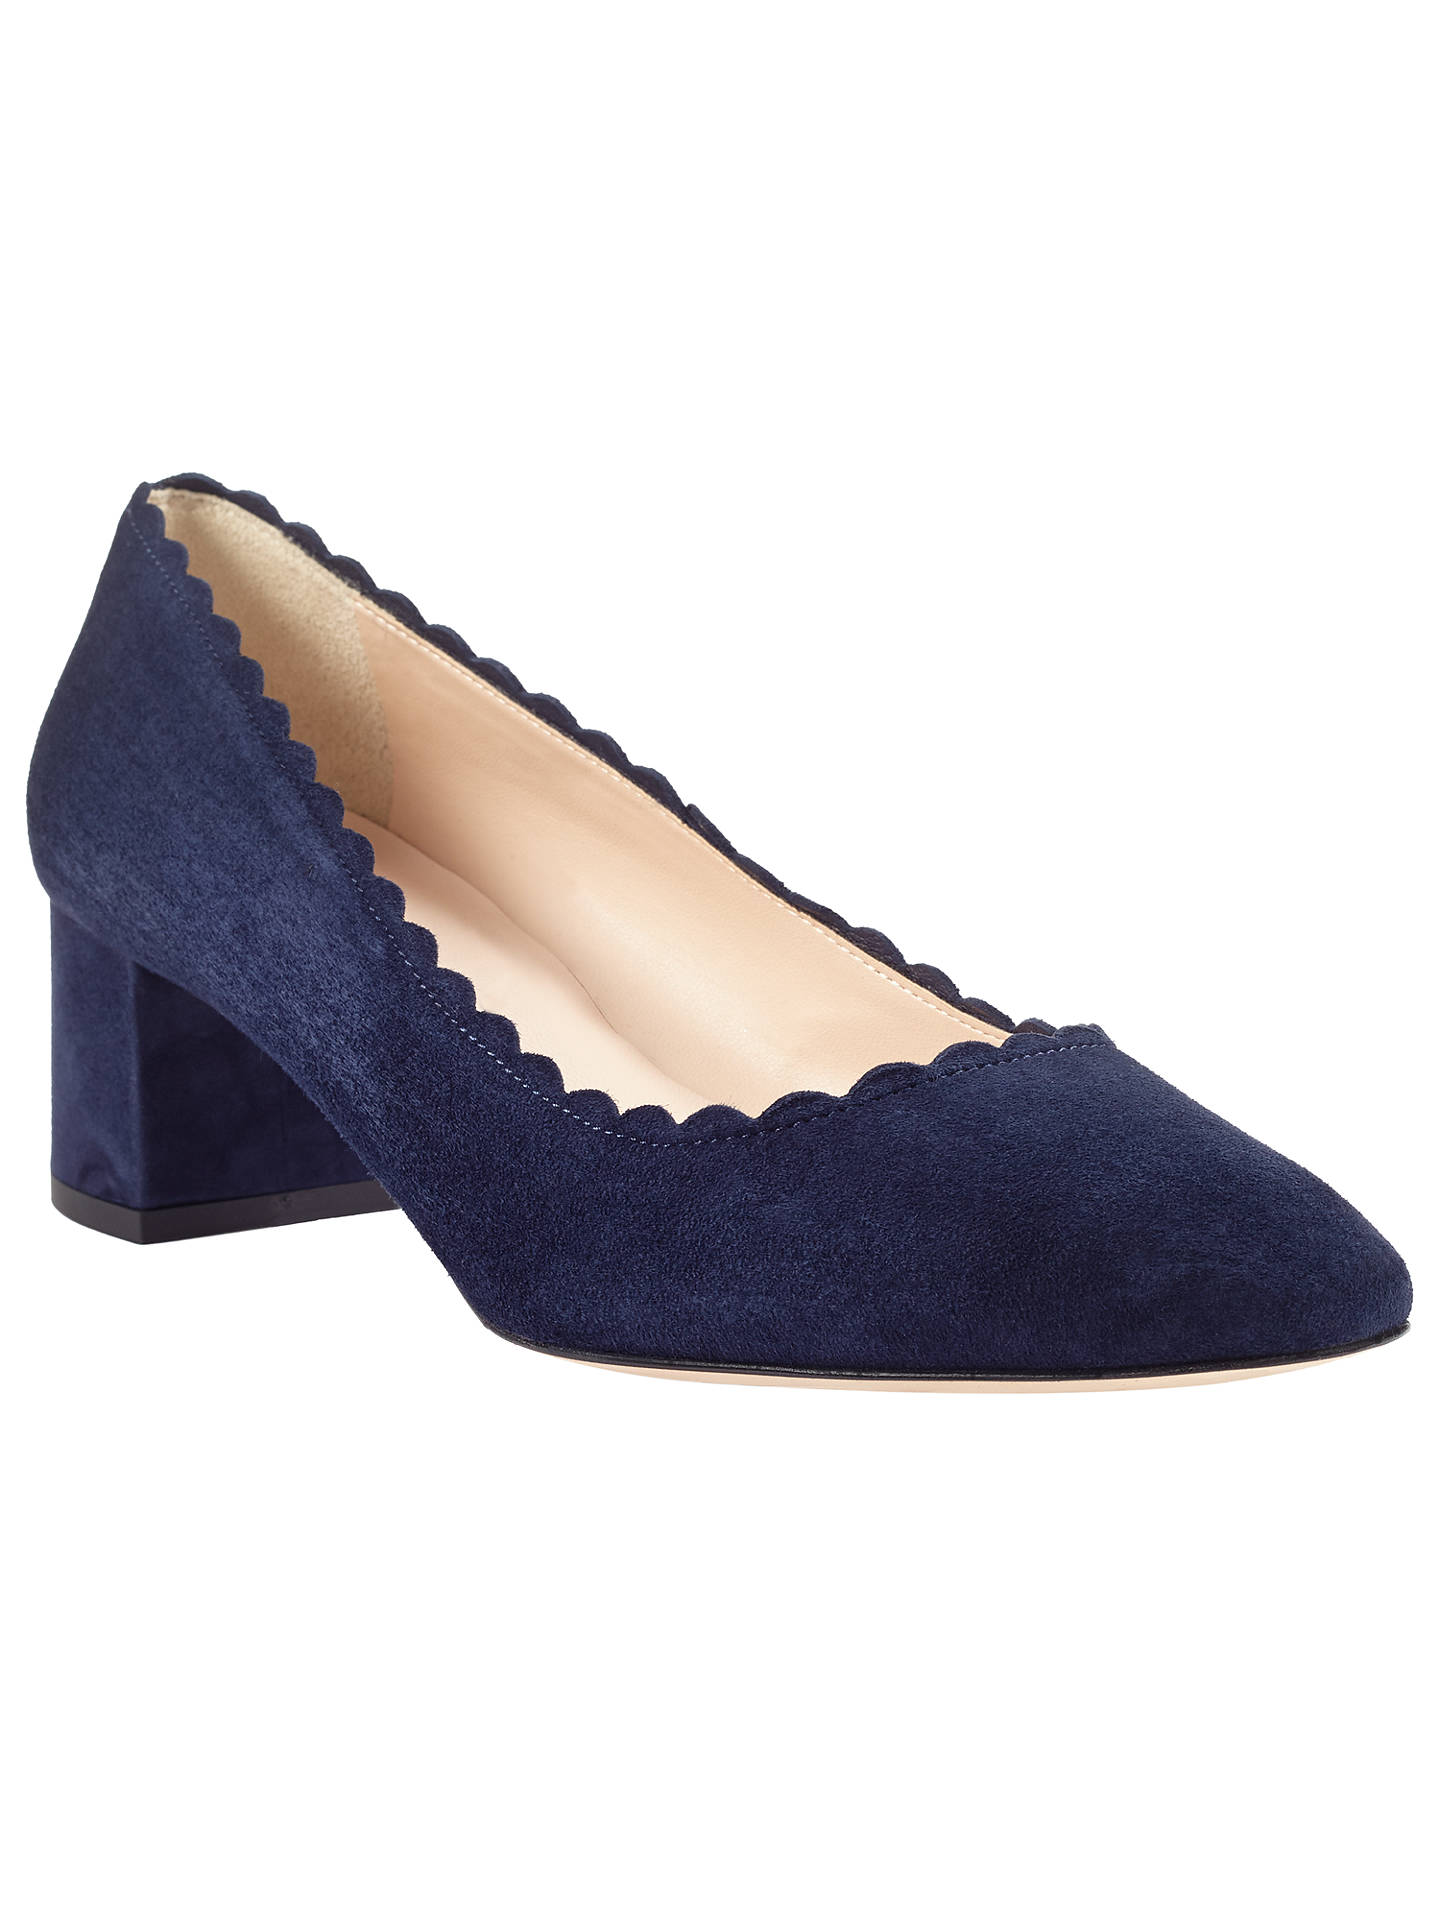 56c36d77b381 Buy John Lewis Ailsa Scalloped Block Heeled Court Shoes, Navy Suede, 3  Online at ...